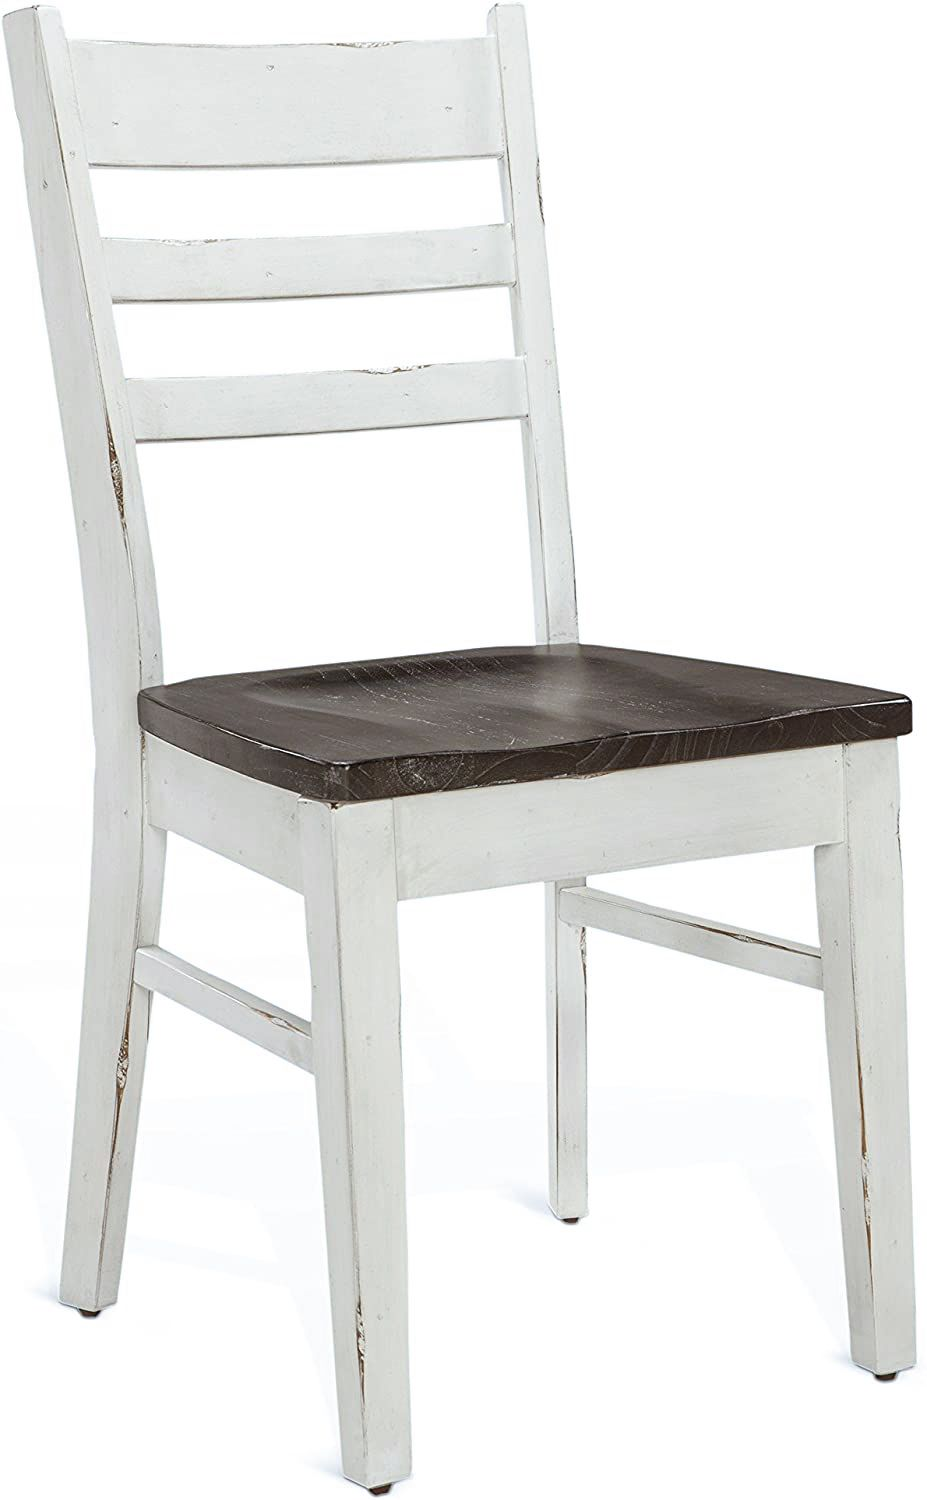 Carriage House Chair Hanksfurniture Com, Carriage House Furniture